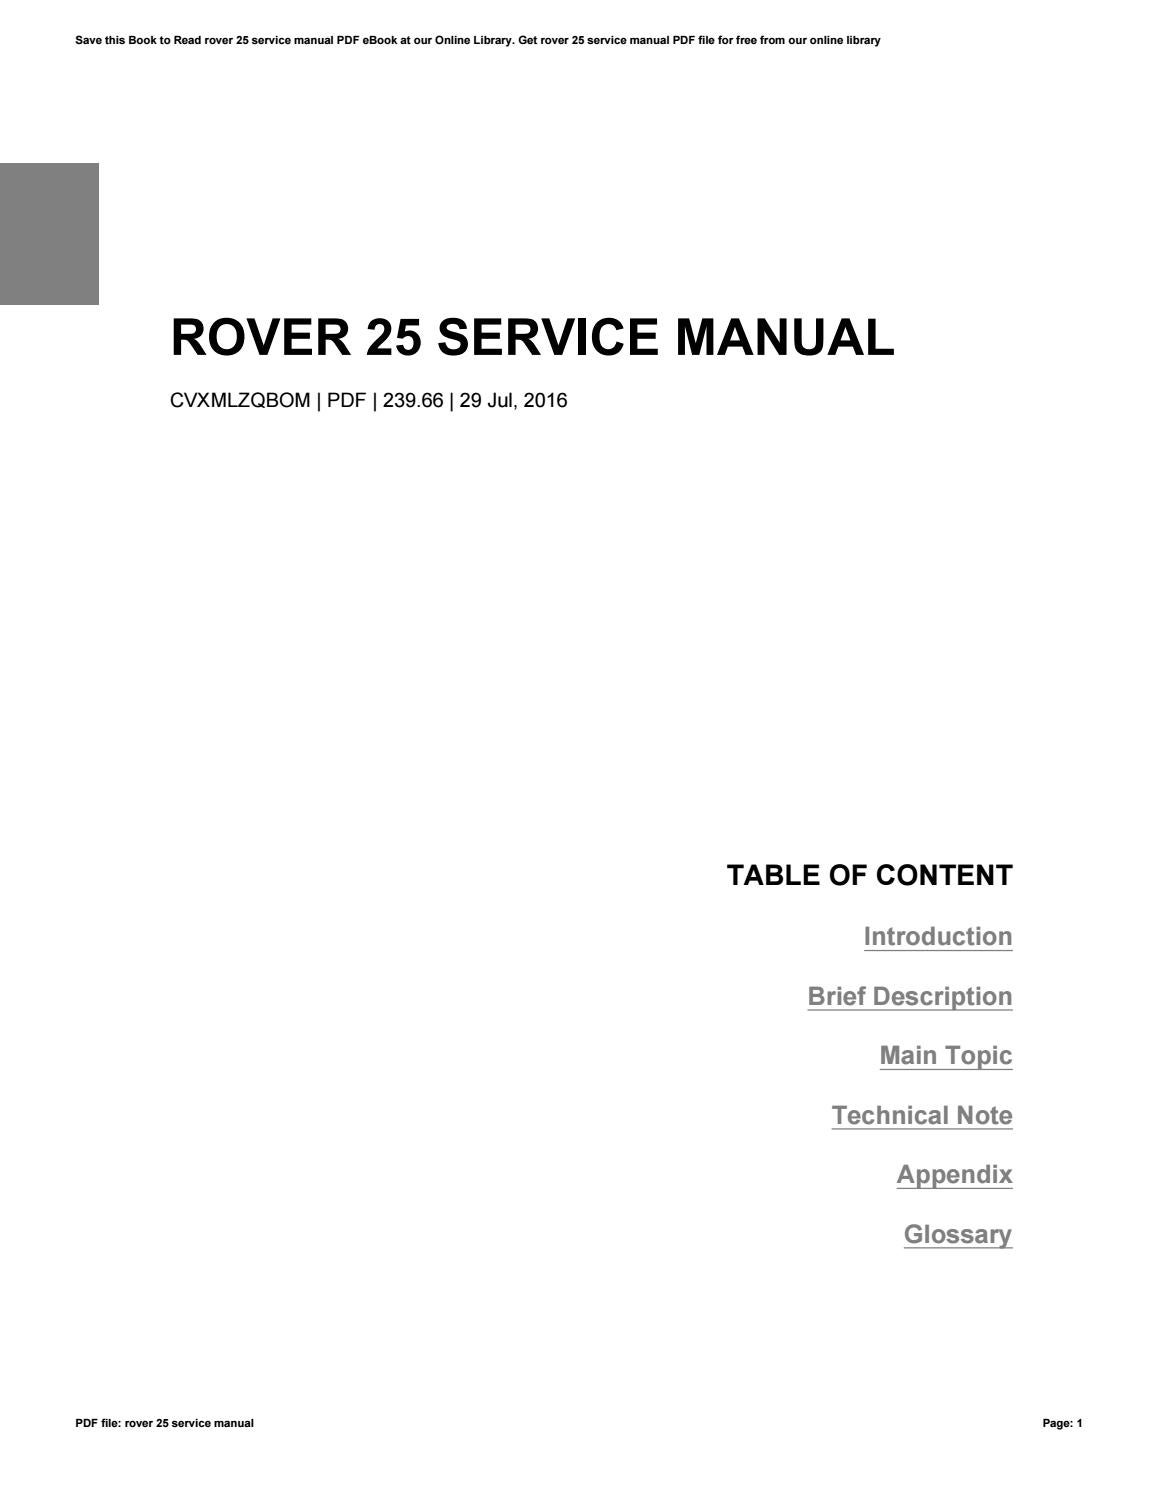 ... owners manual and Array - rover 25 service manual by panor45mires issuu  rh issuu ...